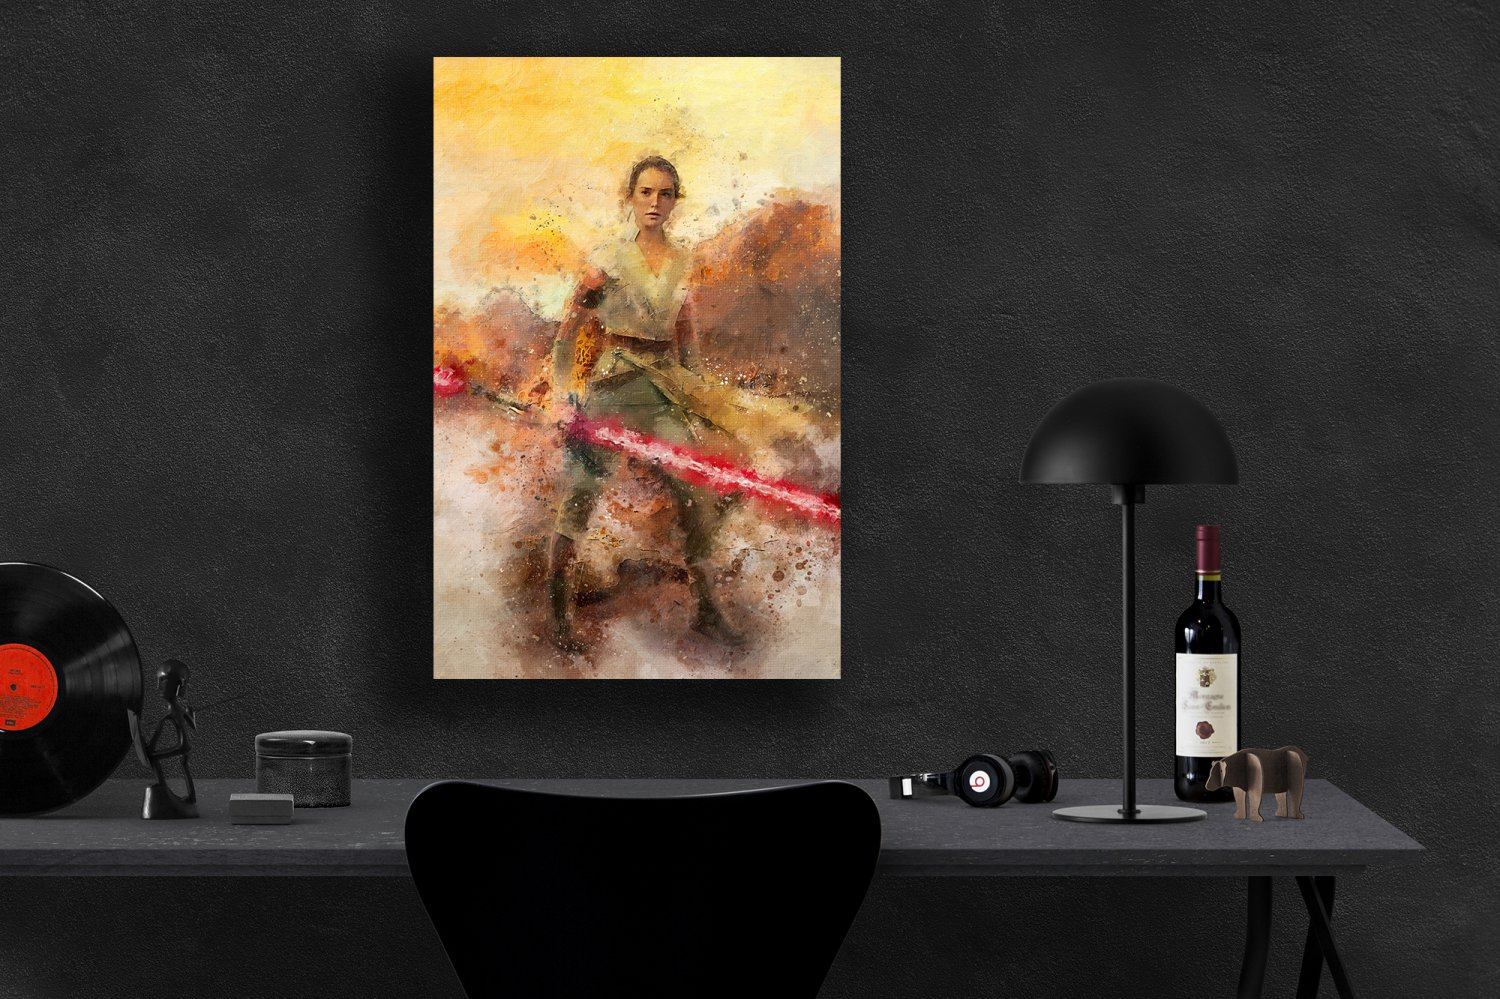 Star Wars, Rey, Daisy Ridley, The Rise of Skywalker  8x12 inches Canvas Print